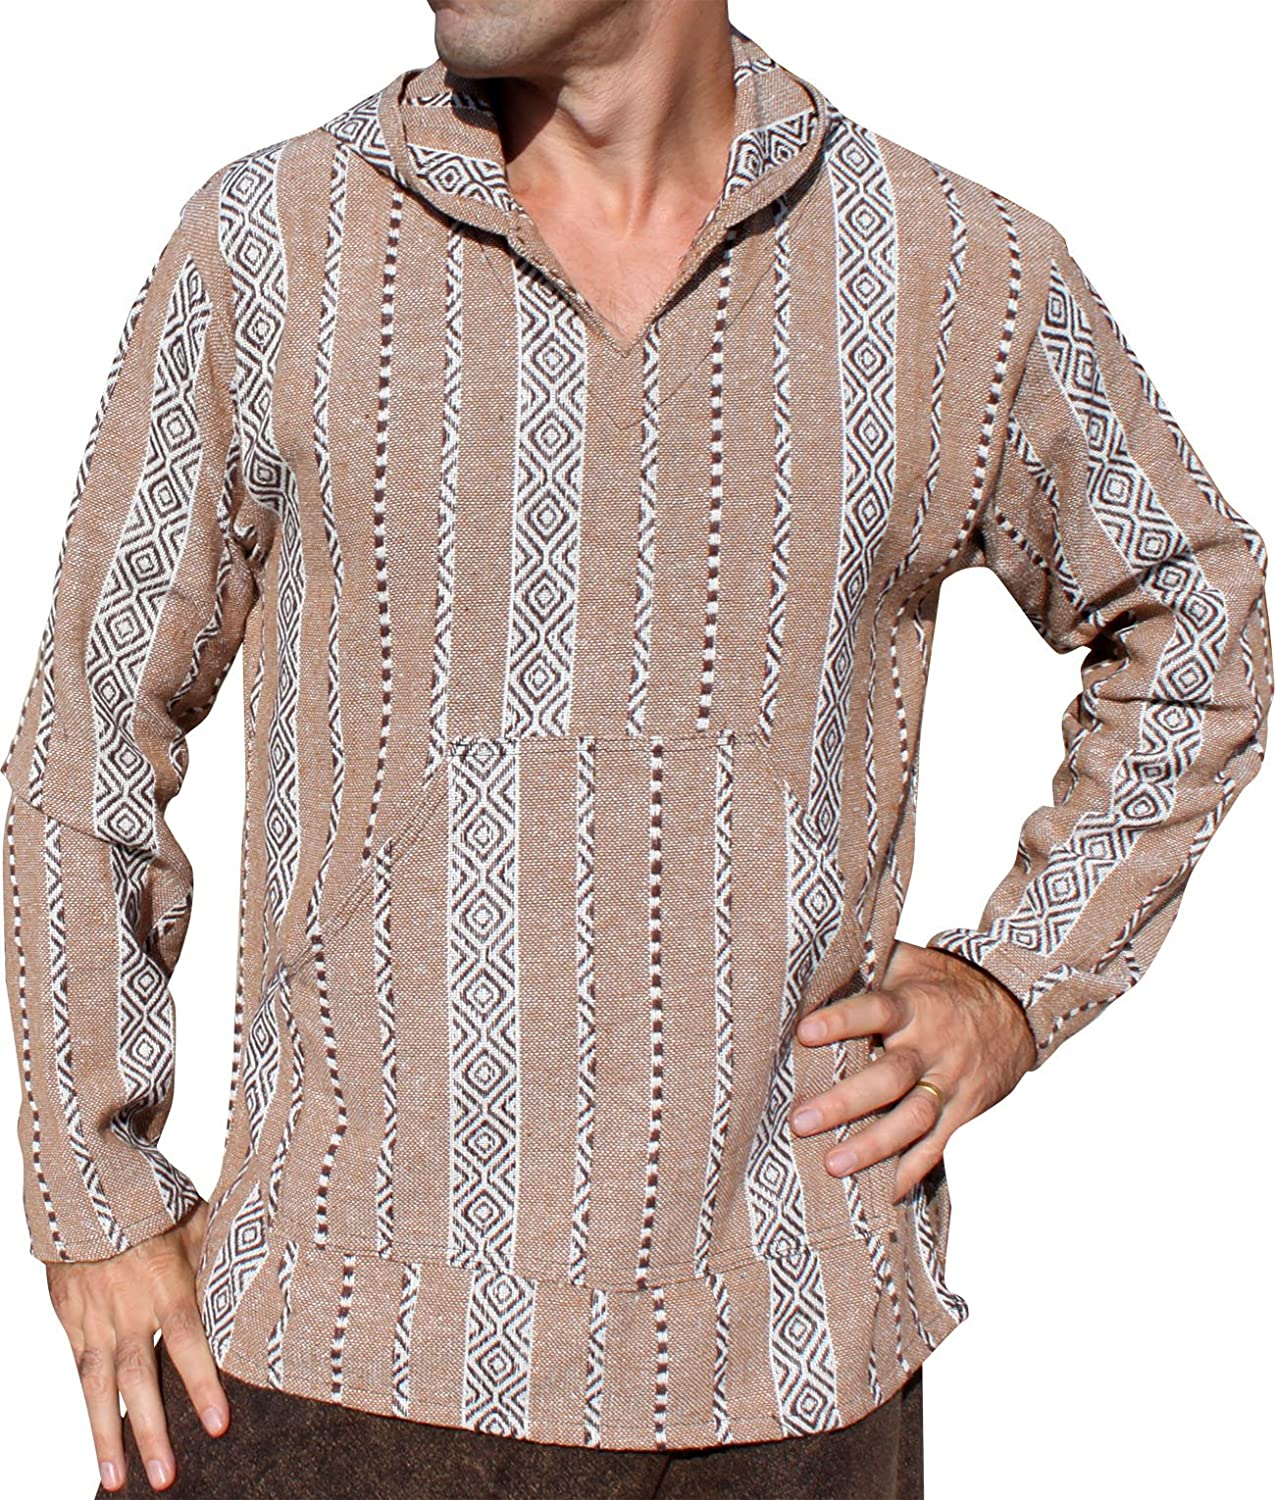 RaanPahMuang Thick Woven Cotton Warm Hoody Jacket Mexican Andes Weave Design